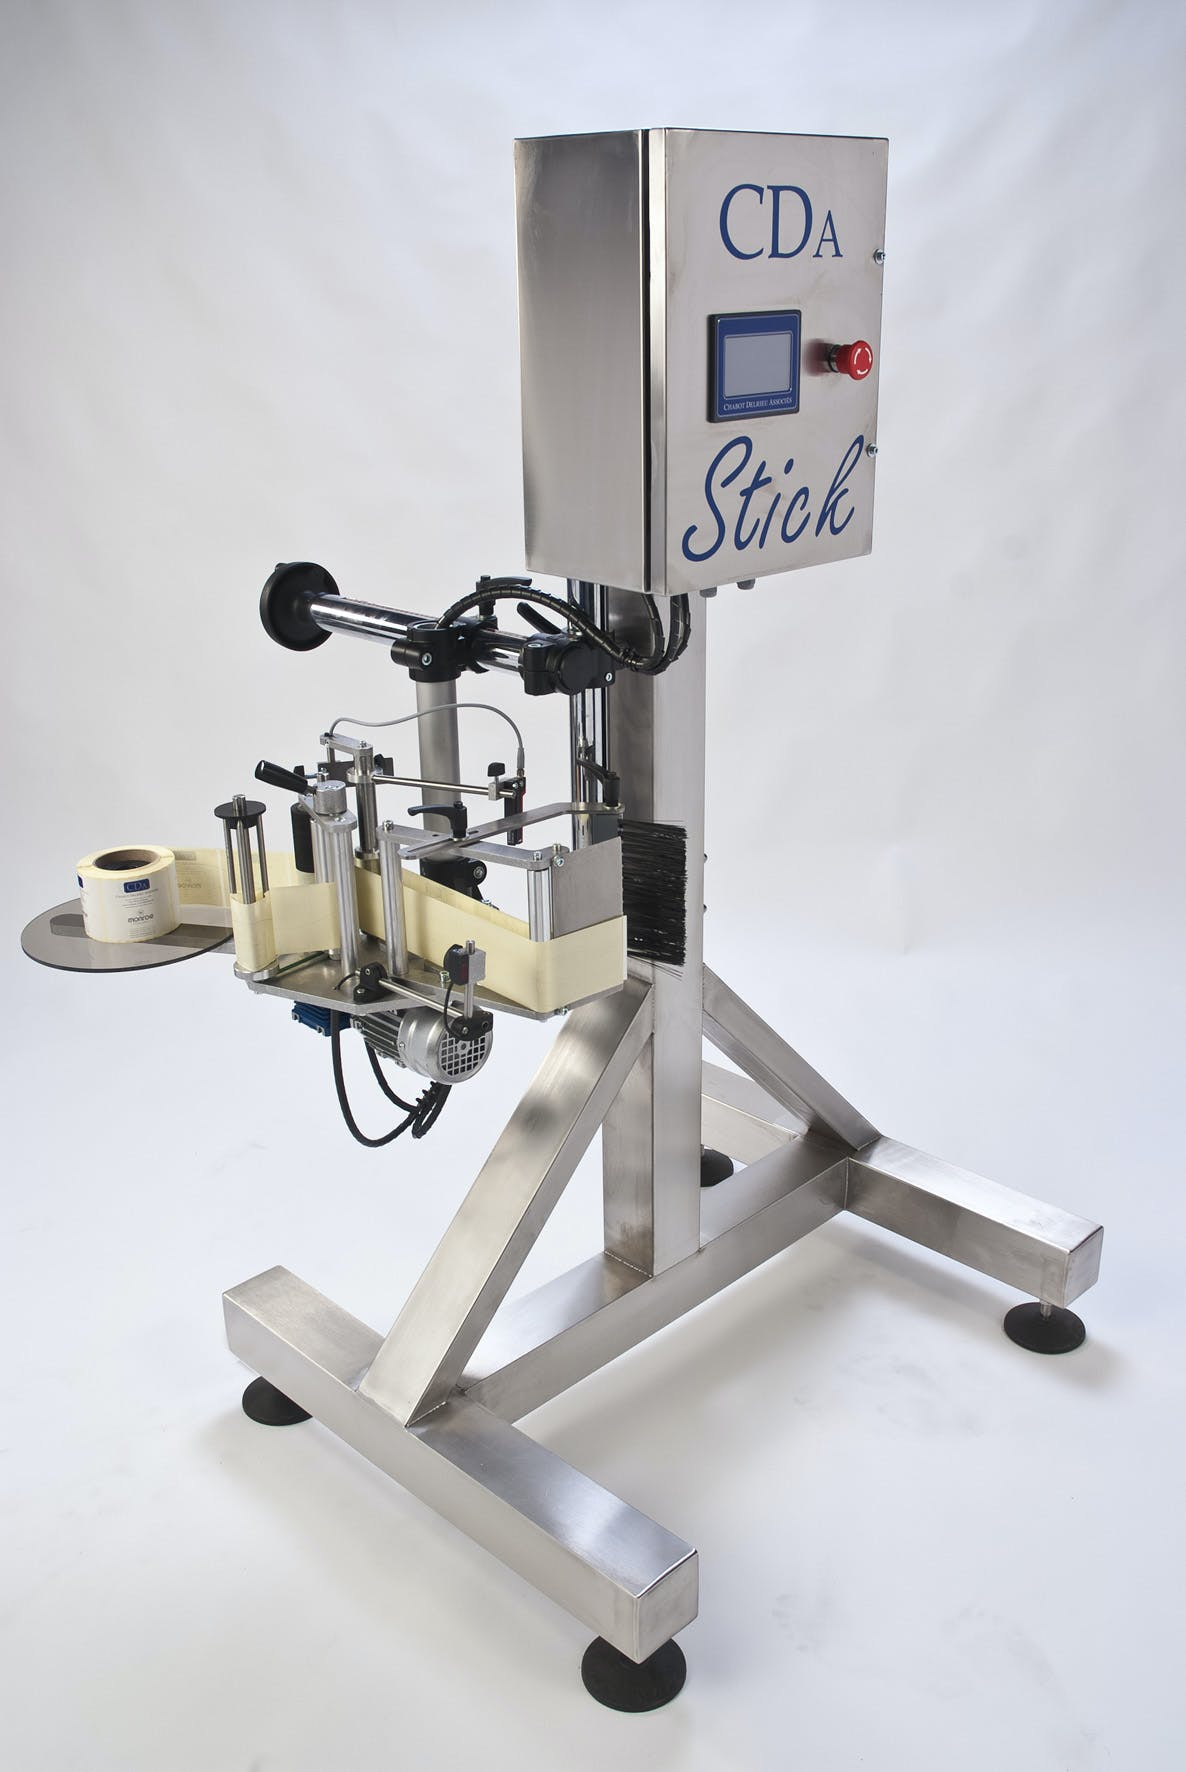 Stick Packaging equipment sold by CDA USA Inc,